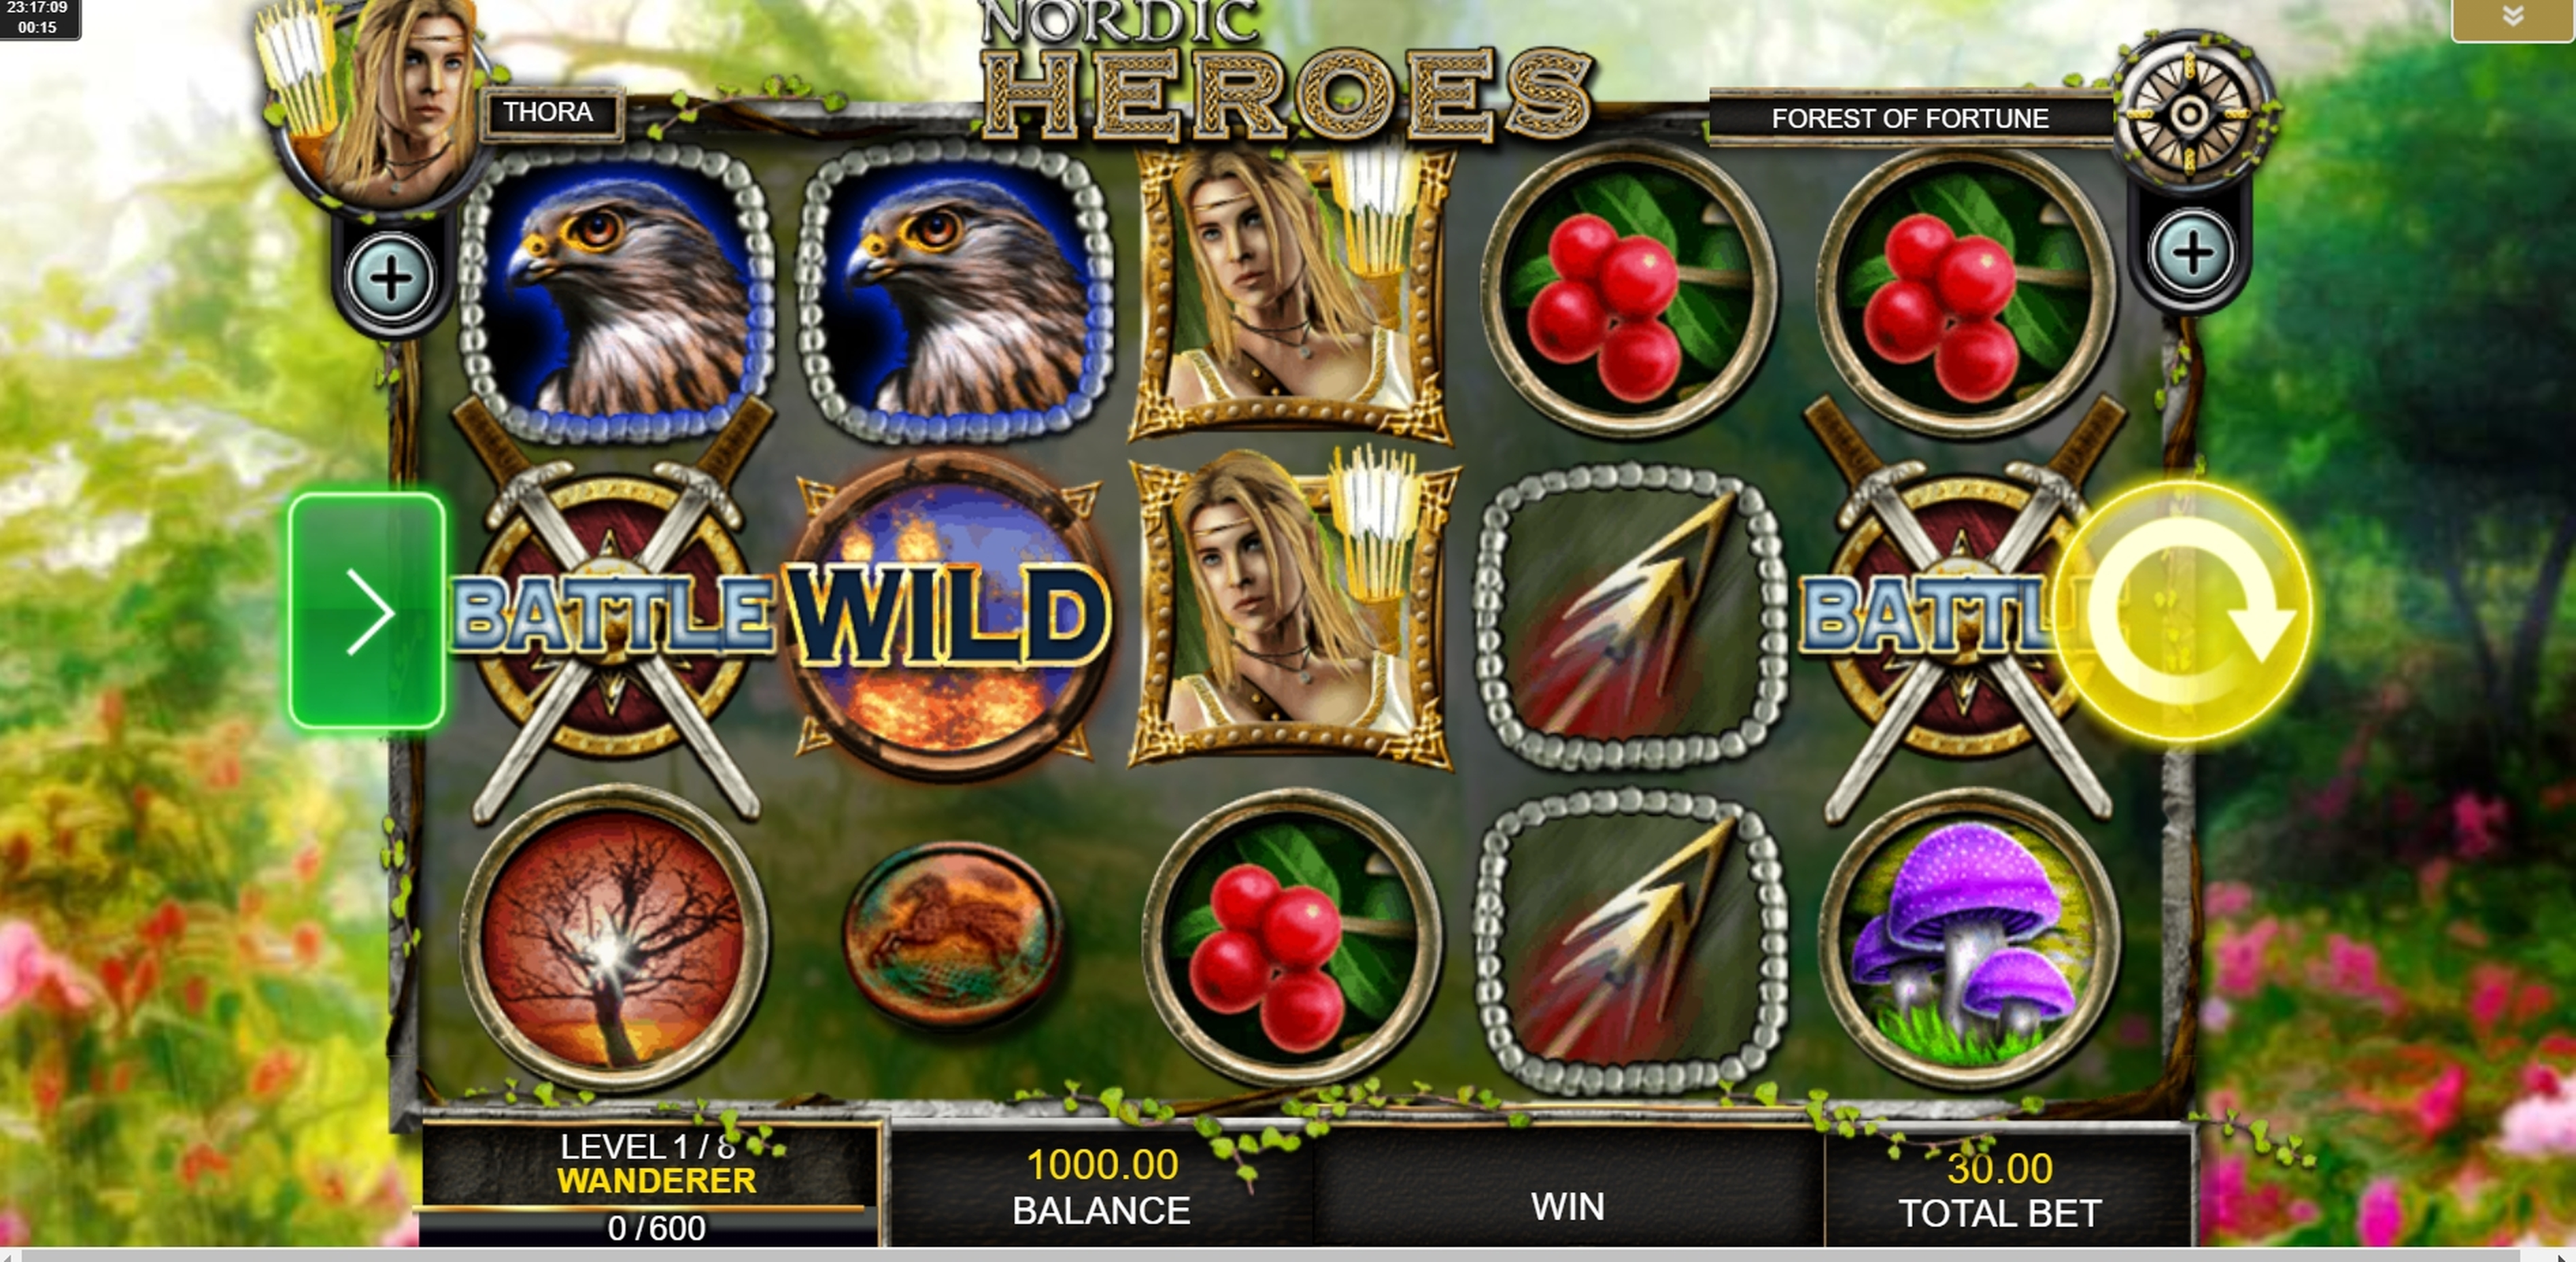 Reels in Nordic Heroes Slot Game by IGT